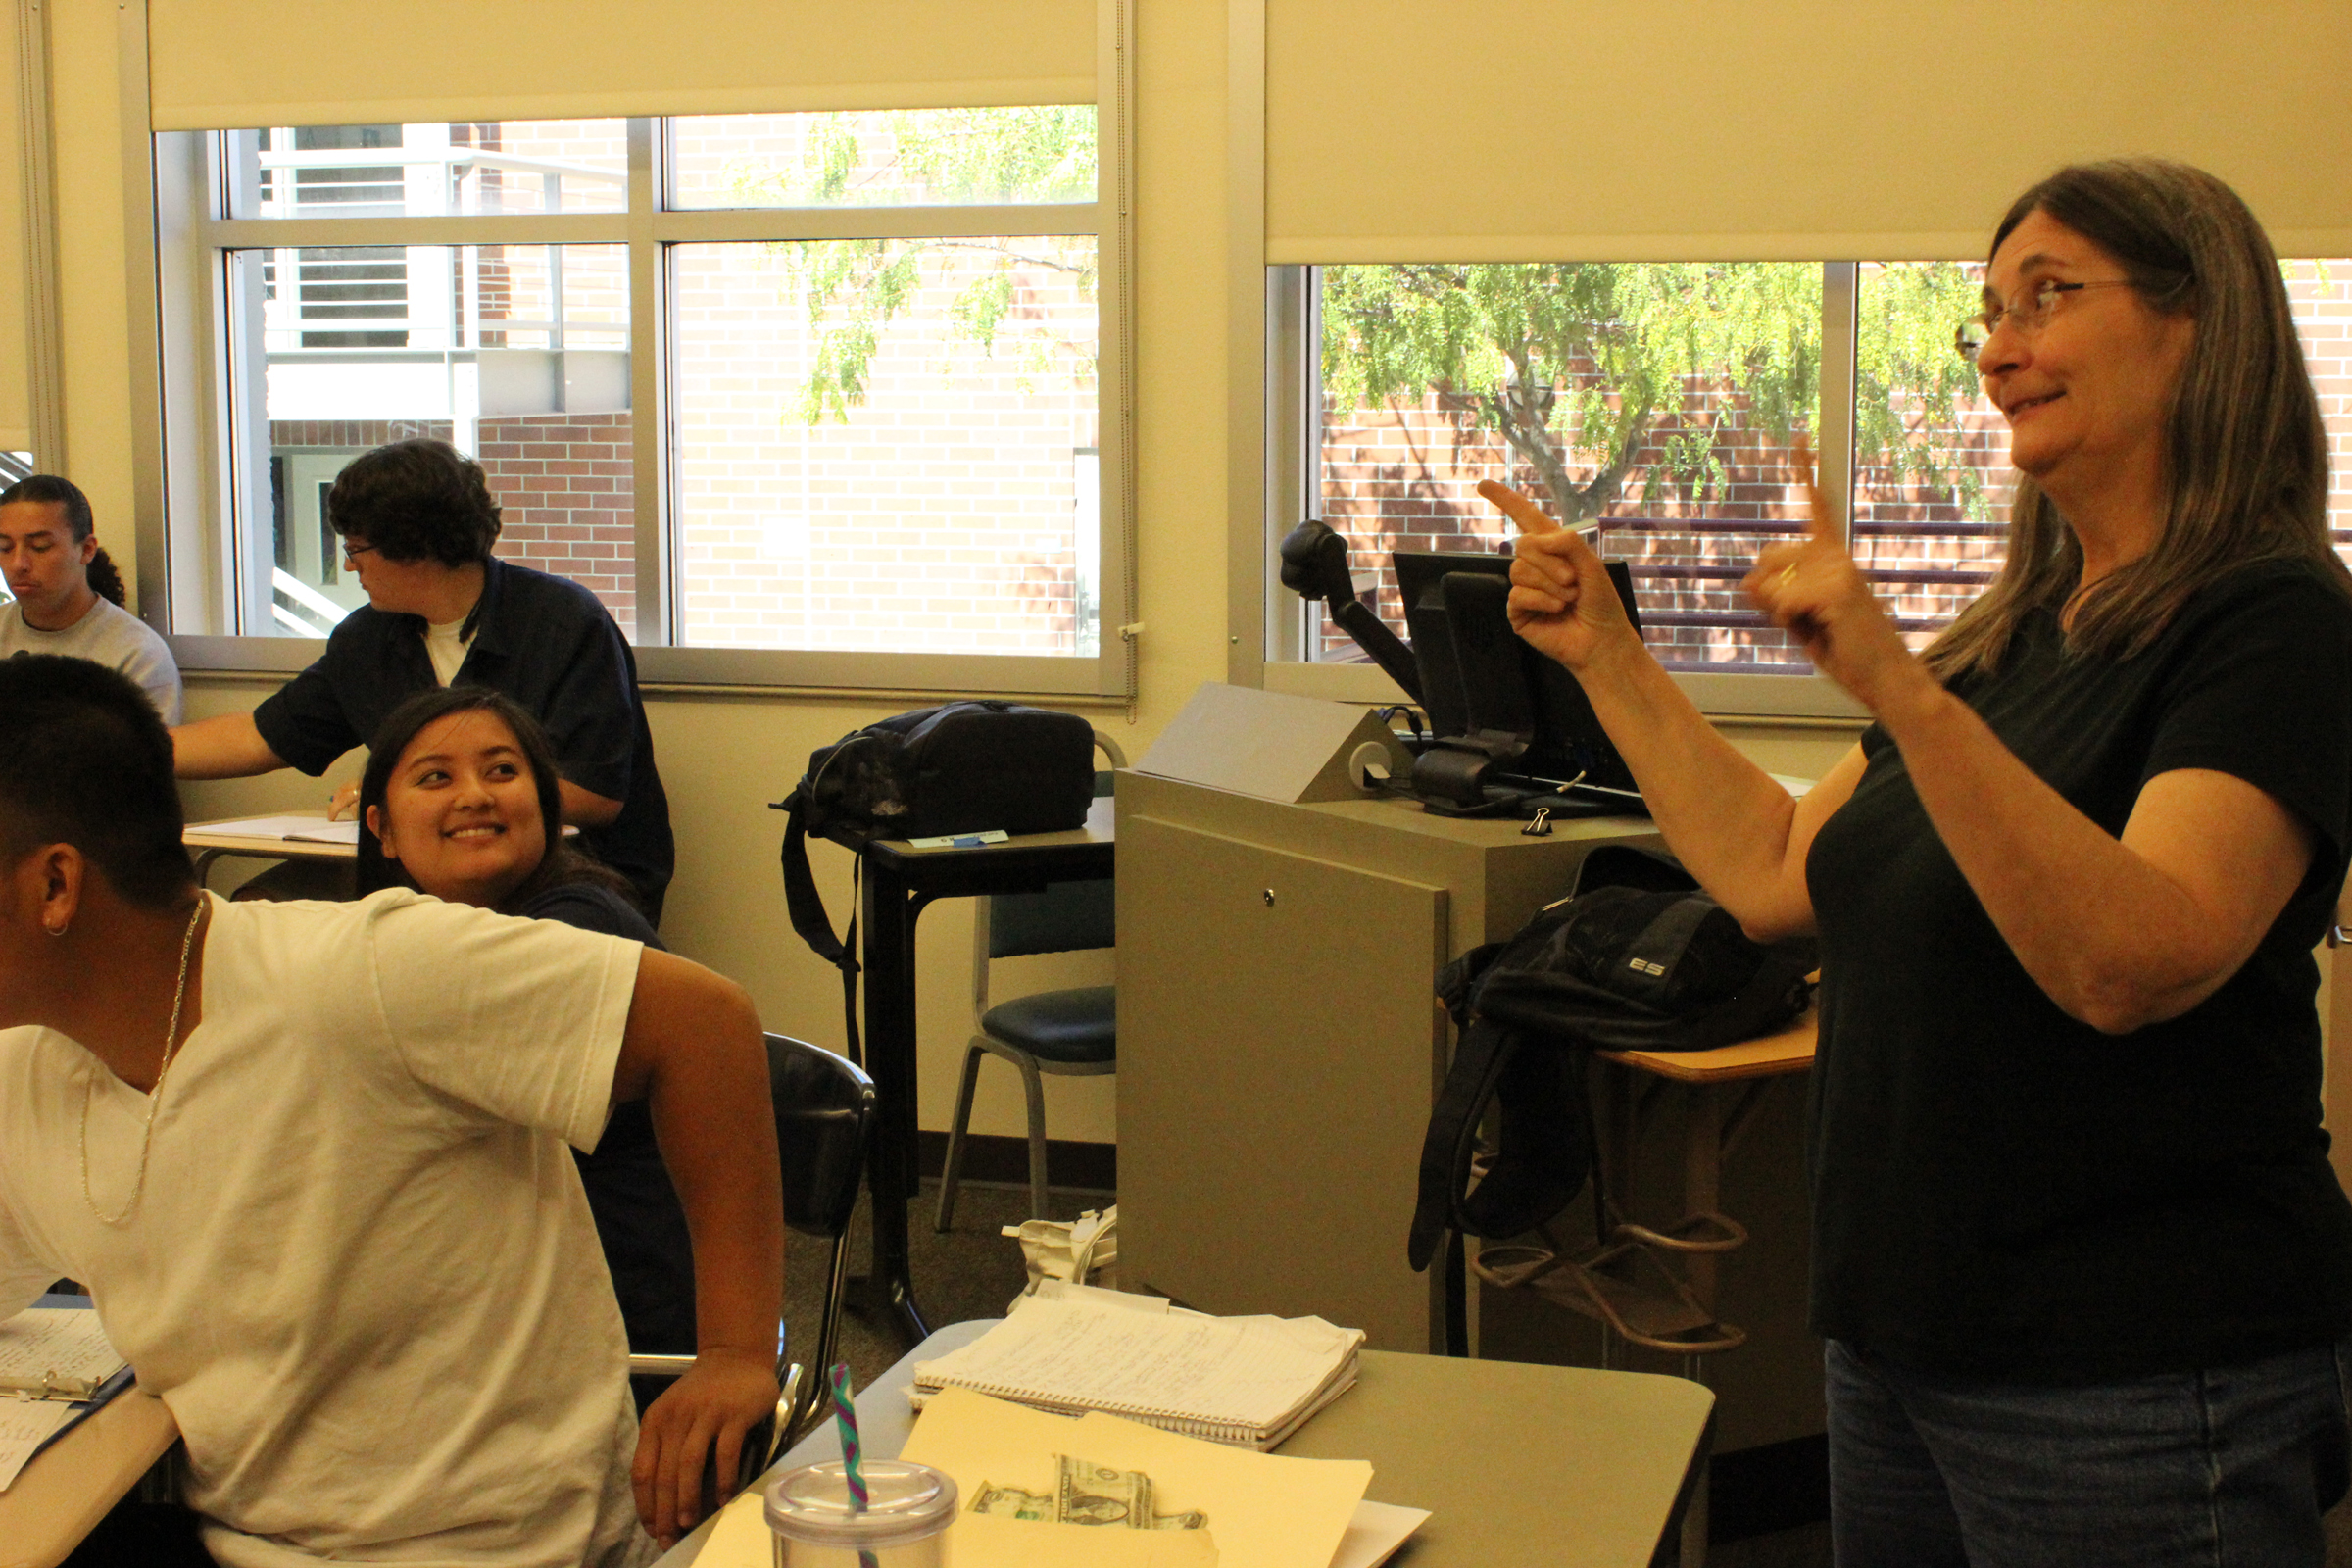 City College sign language professor, Pat Masterson, uses exaggerate facial expressions to capture attention and excite her students without sound while she teaches. Tony Wallin | dylanwaittswallin.express@gmail.com